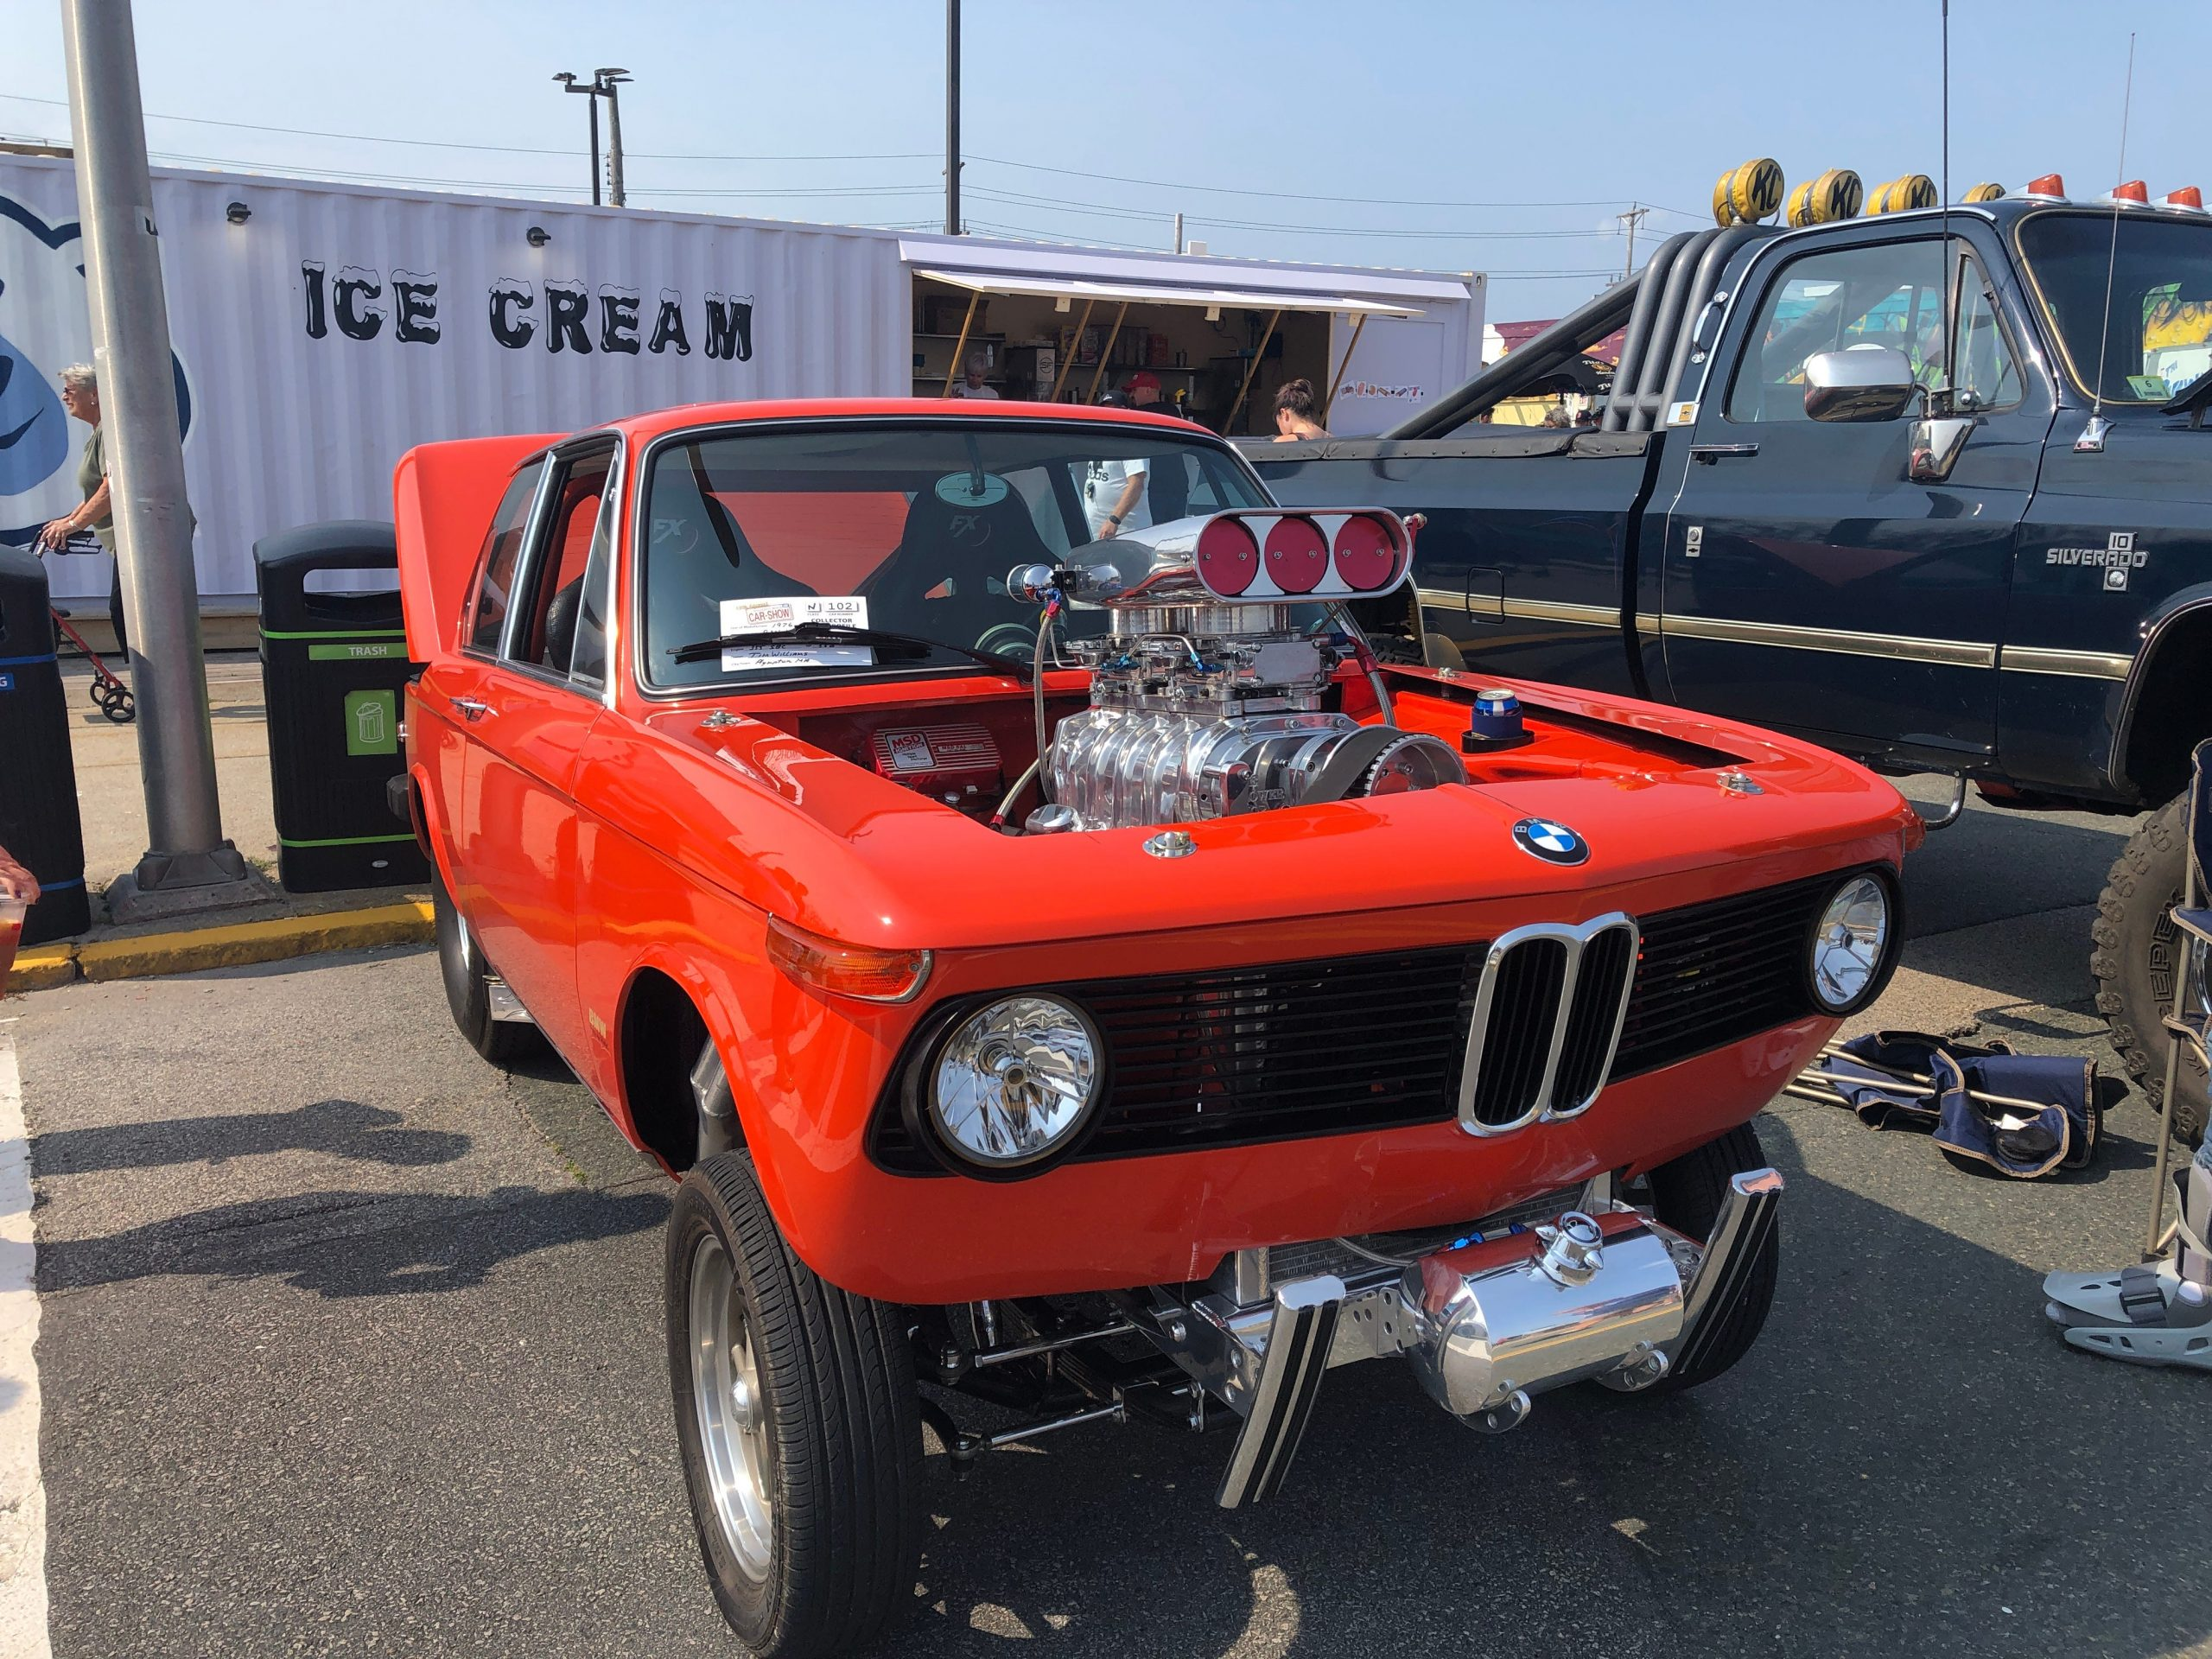 Brockton039s Abe039s Garage a new destination for classic car lovers